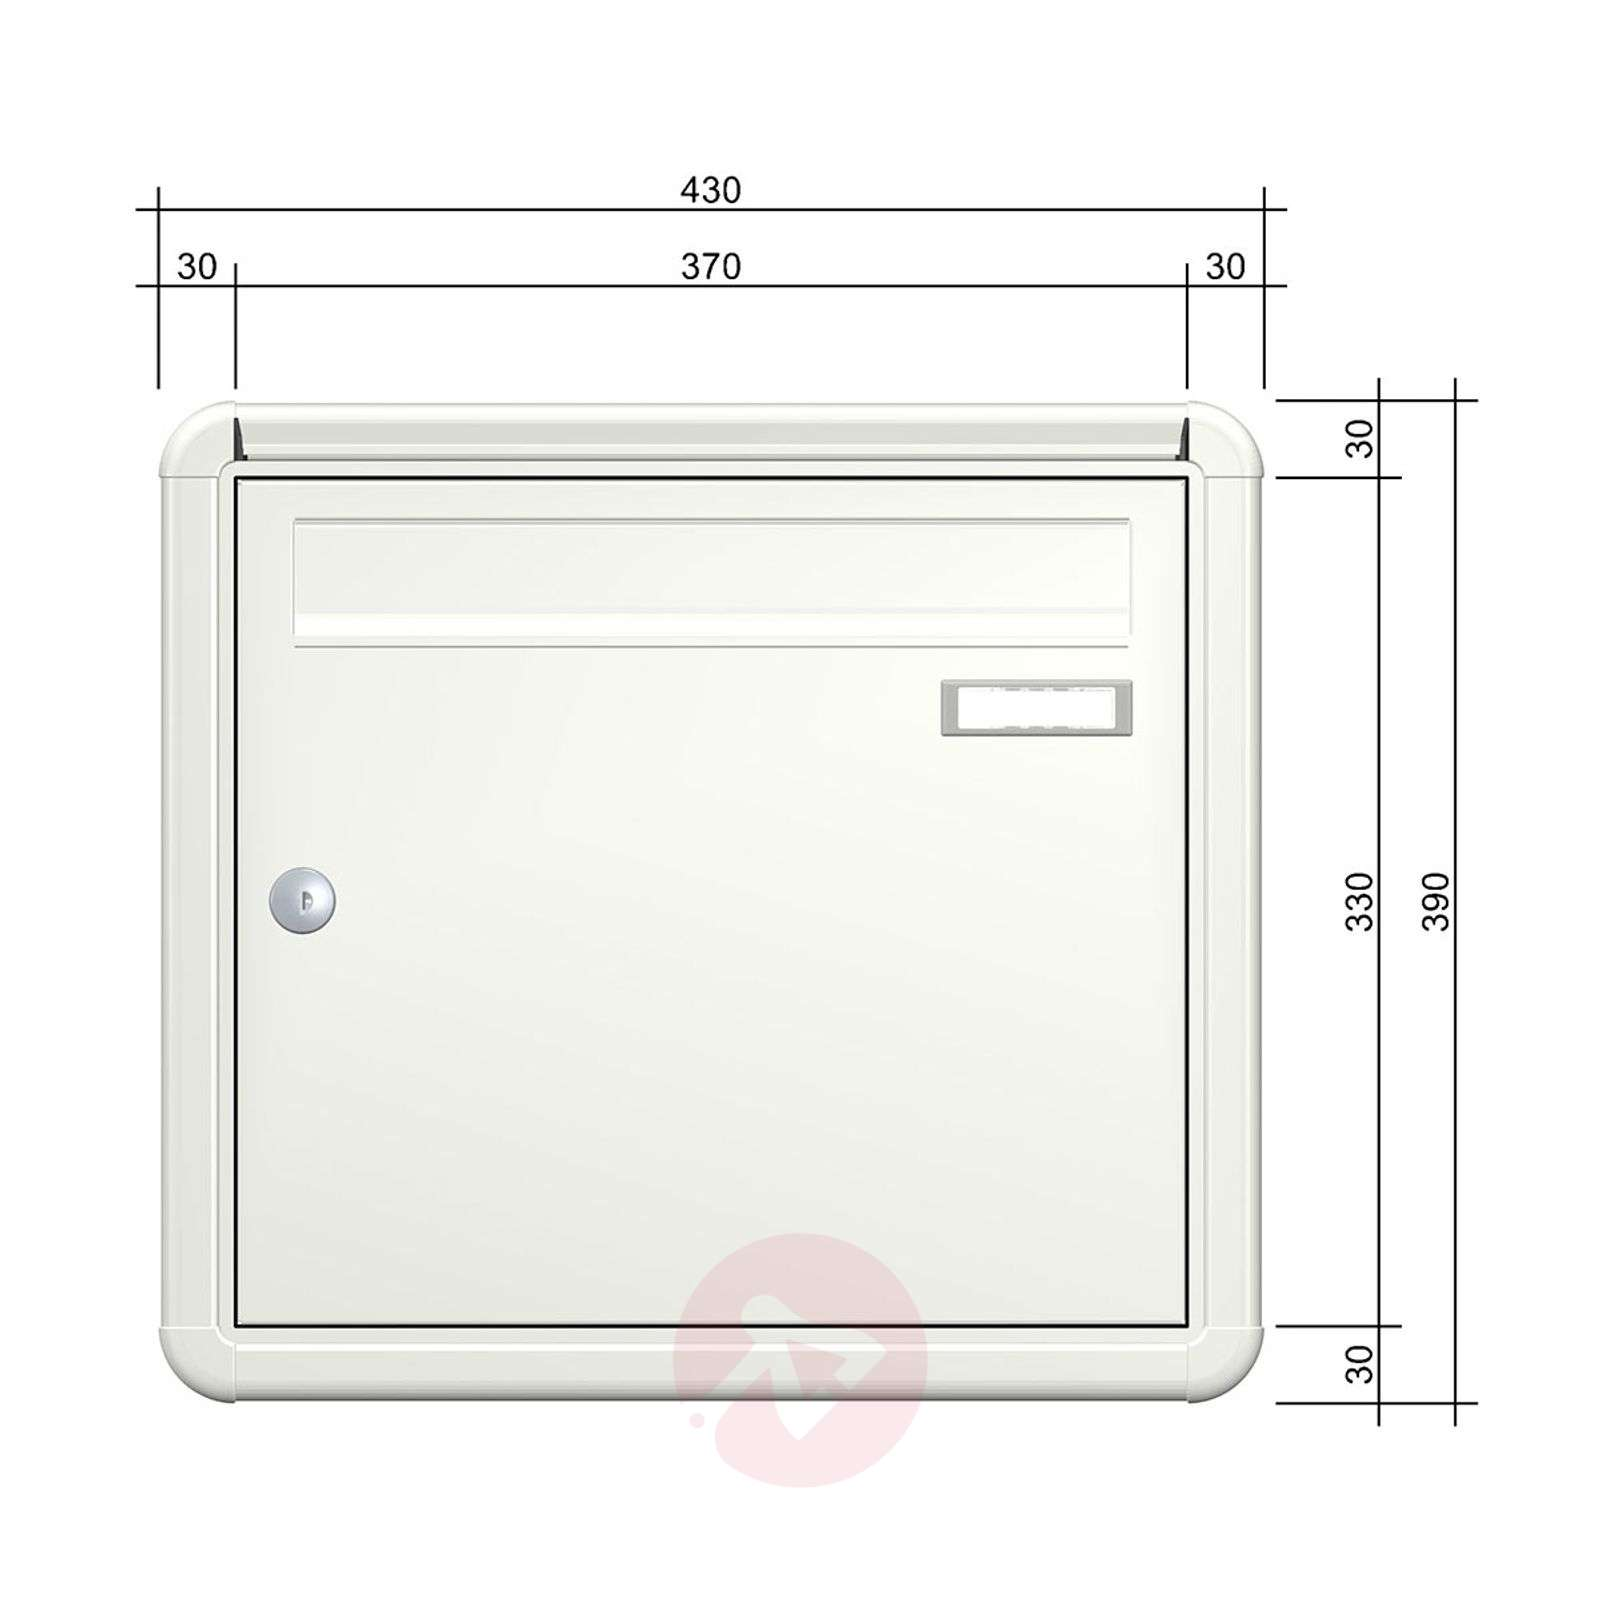 With rain lip, letterbox Express Box Up 120, white-5540035-01